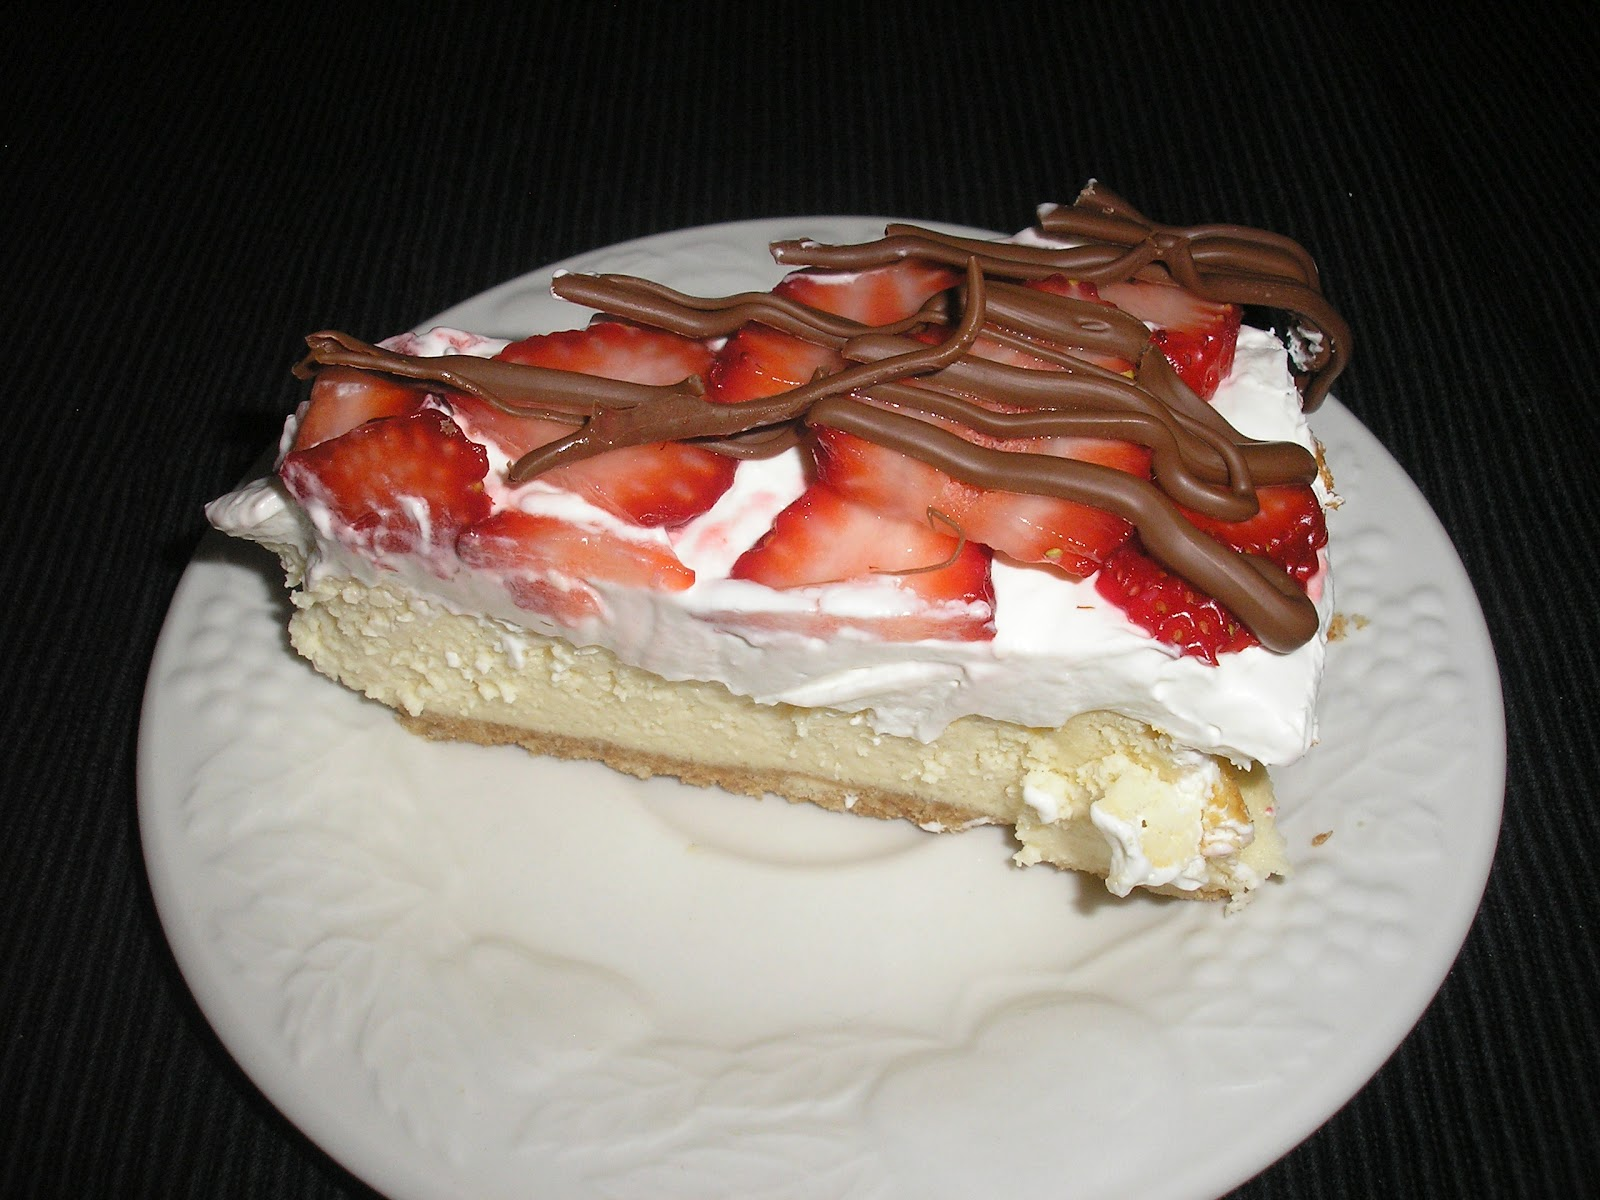 Cookin' Mamas: Chocolate Covered Strawberry Cheesecake